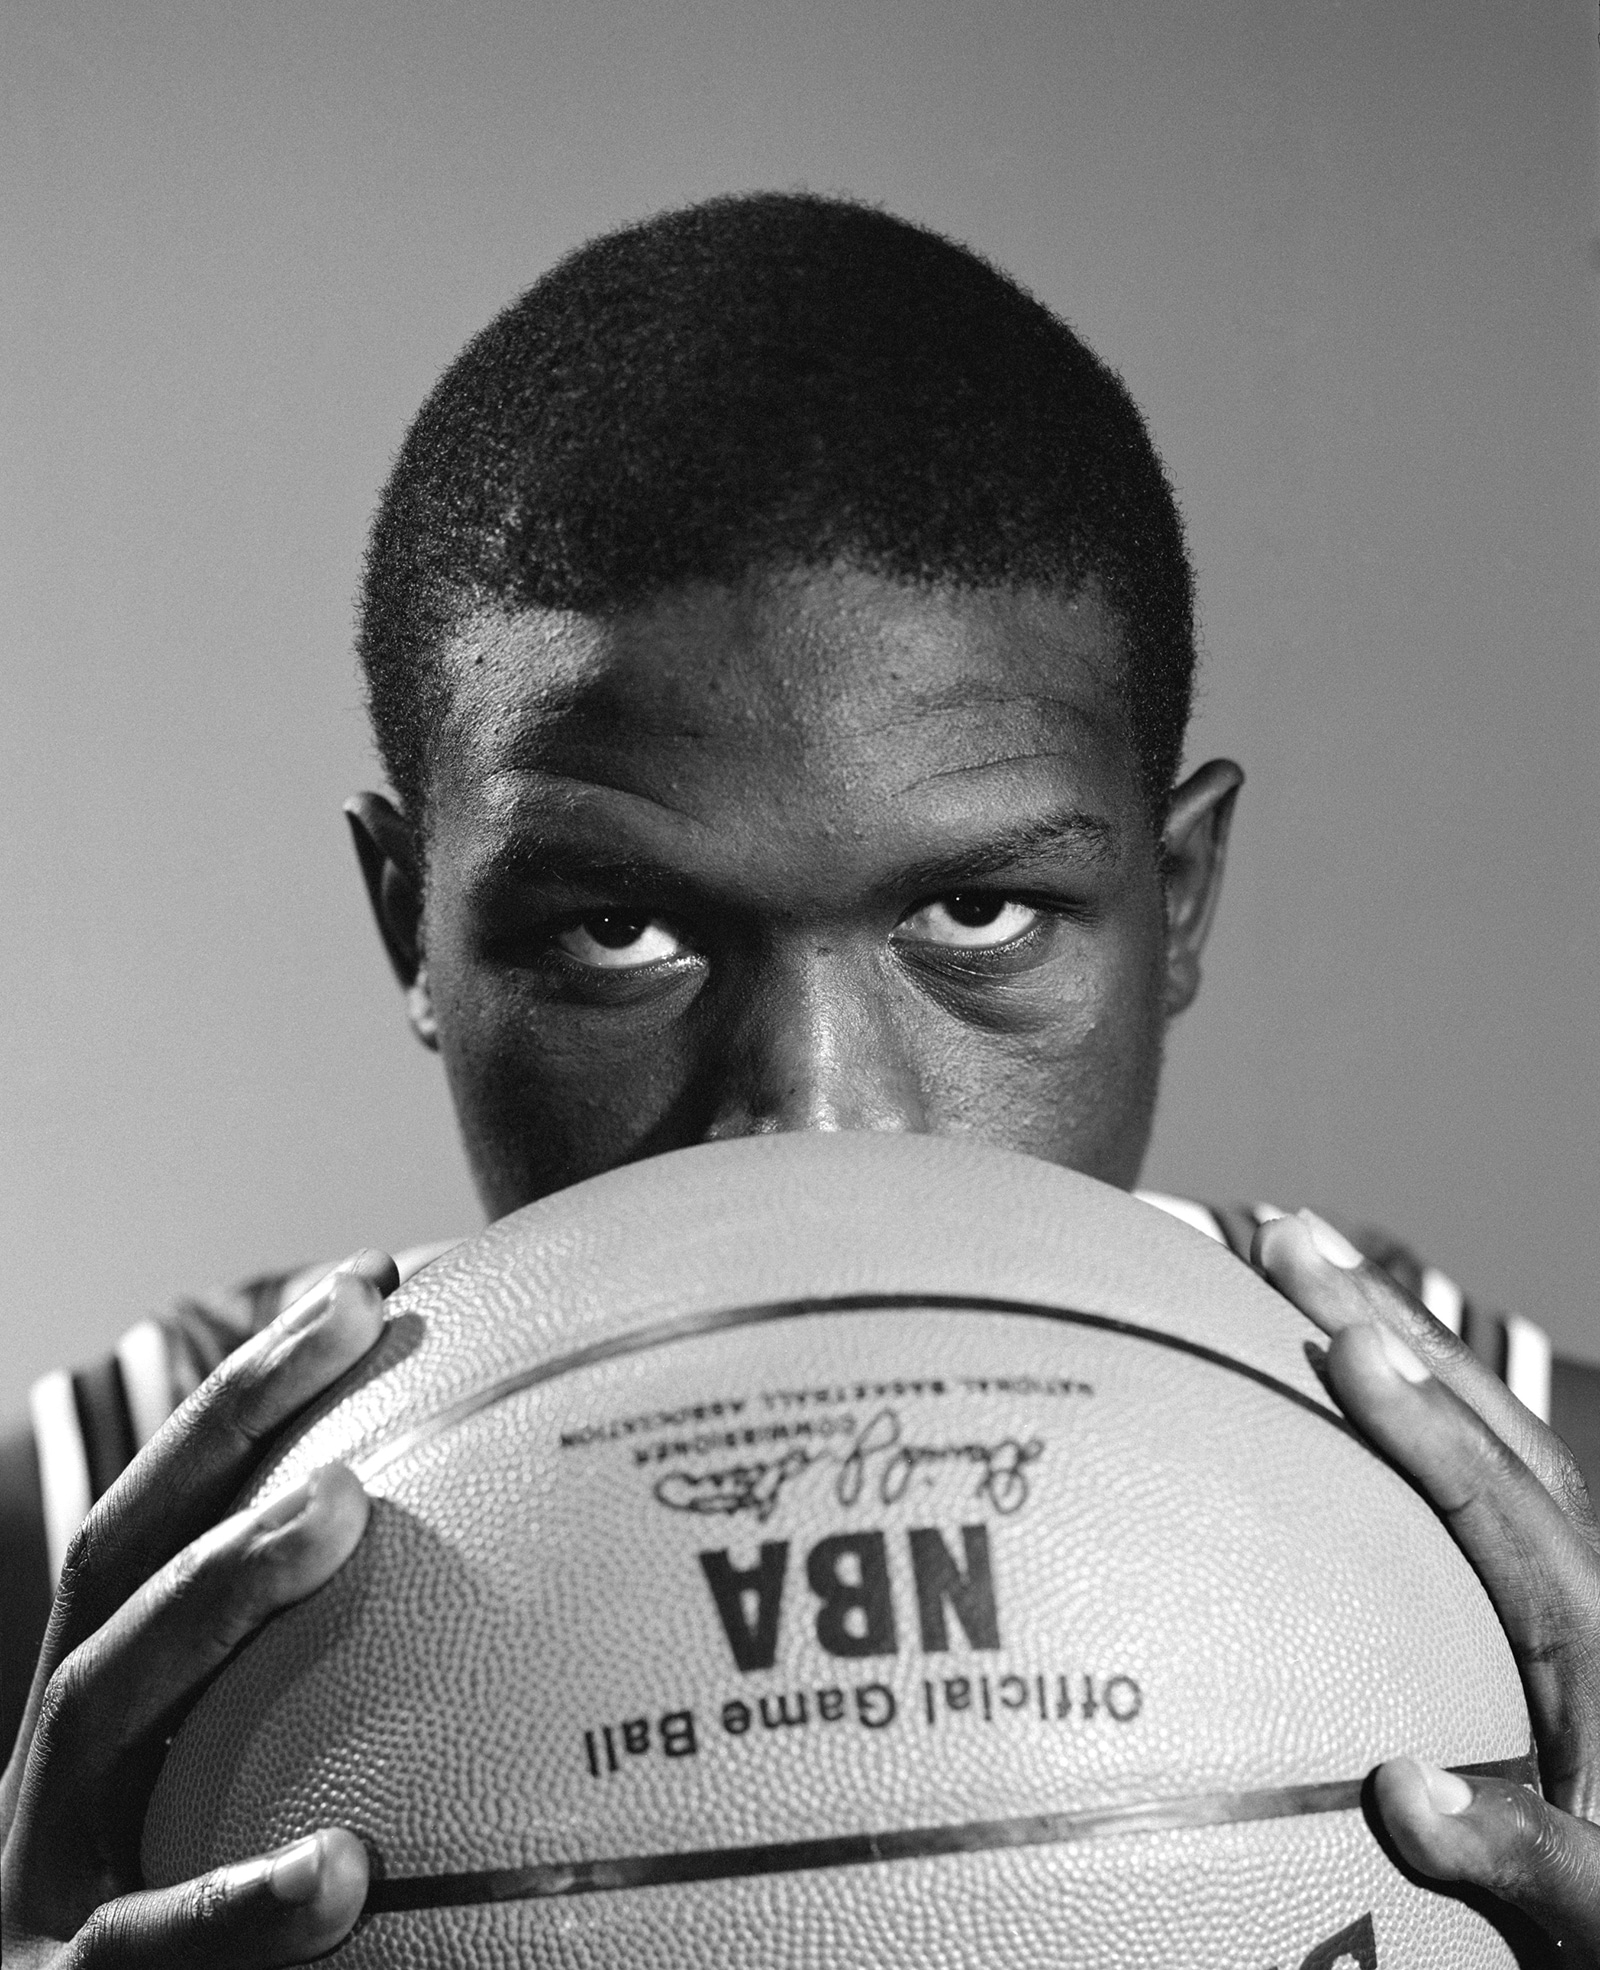 Luol Deng's Rookie Photoshoot